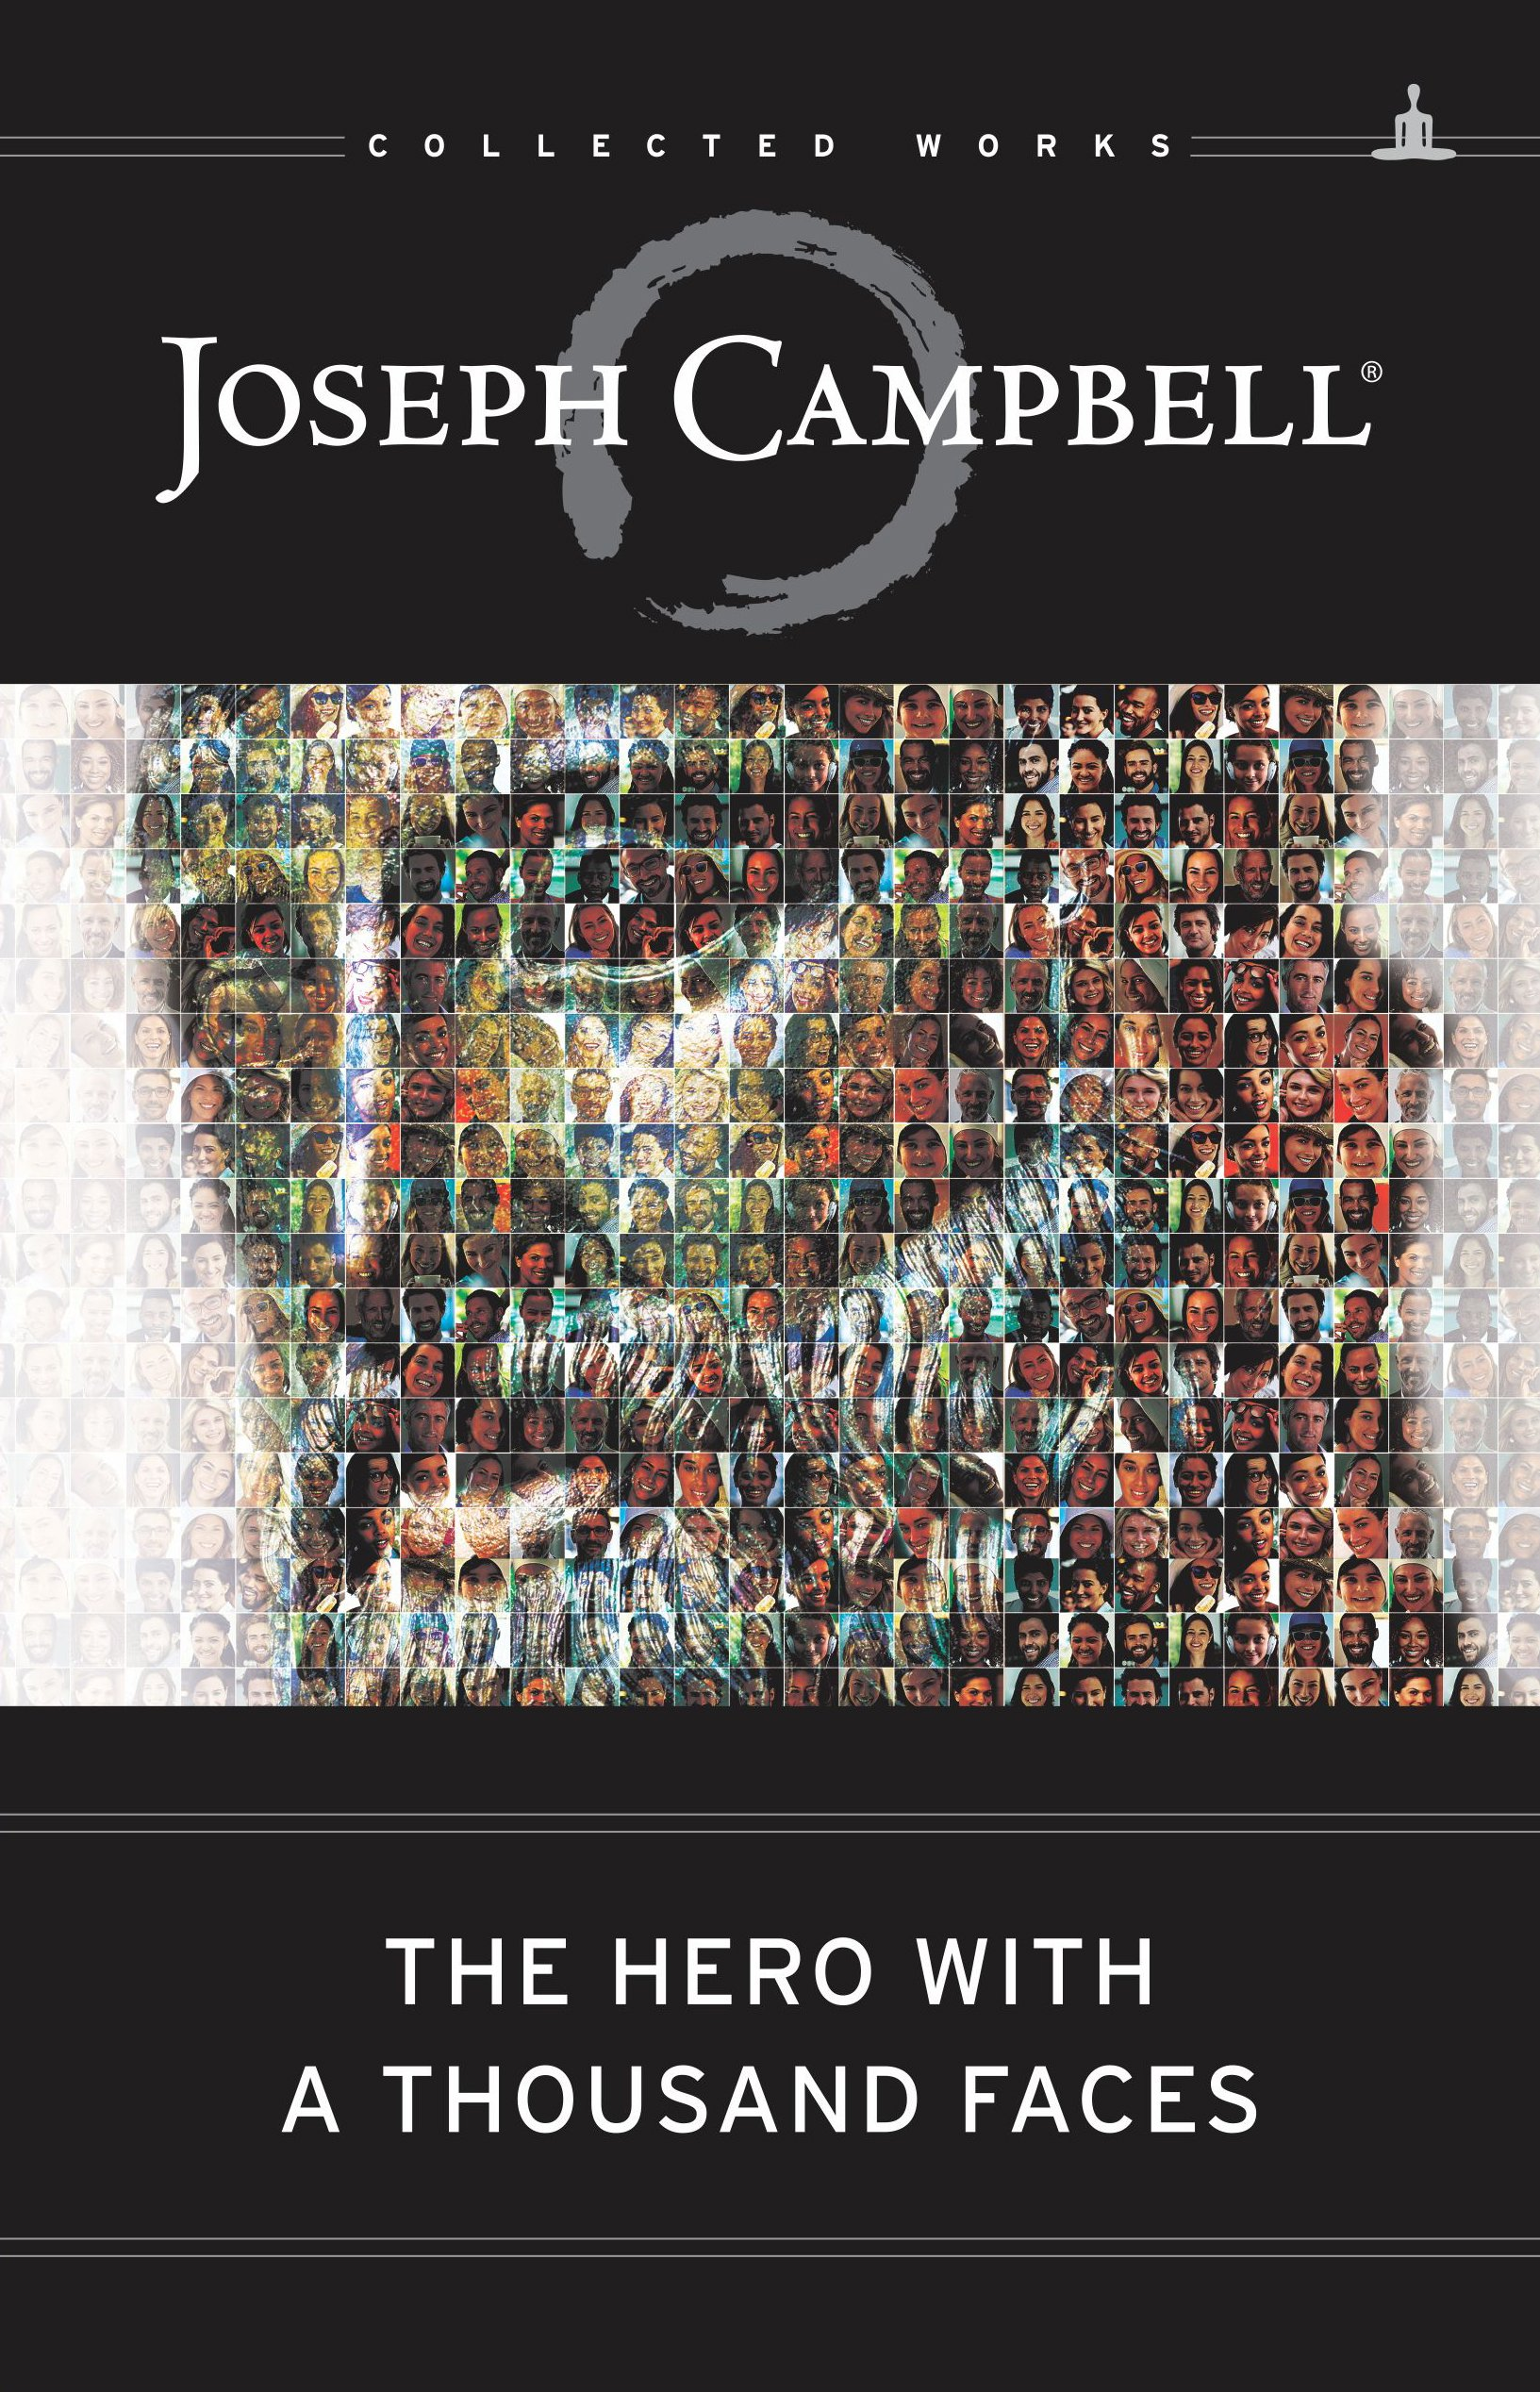 10. The Hero with a Thousand Faces - by Joseph Campbell